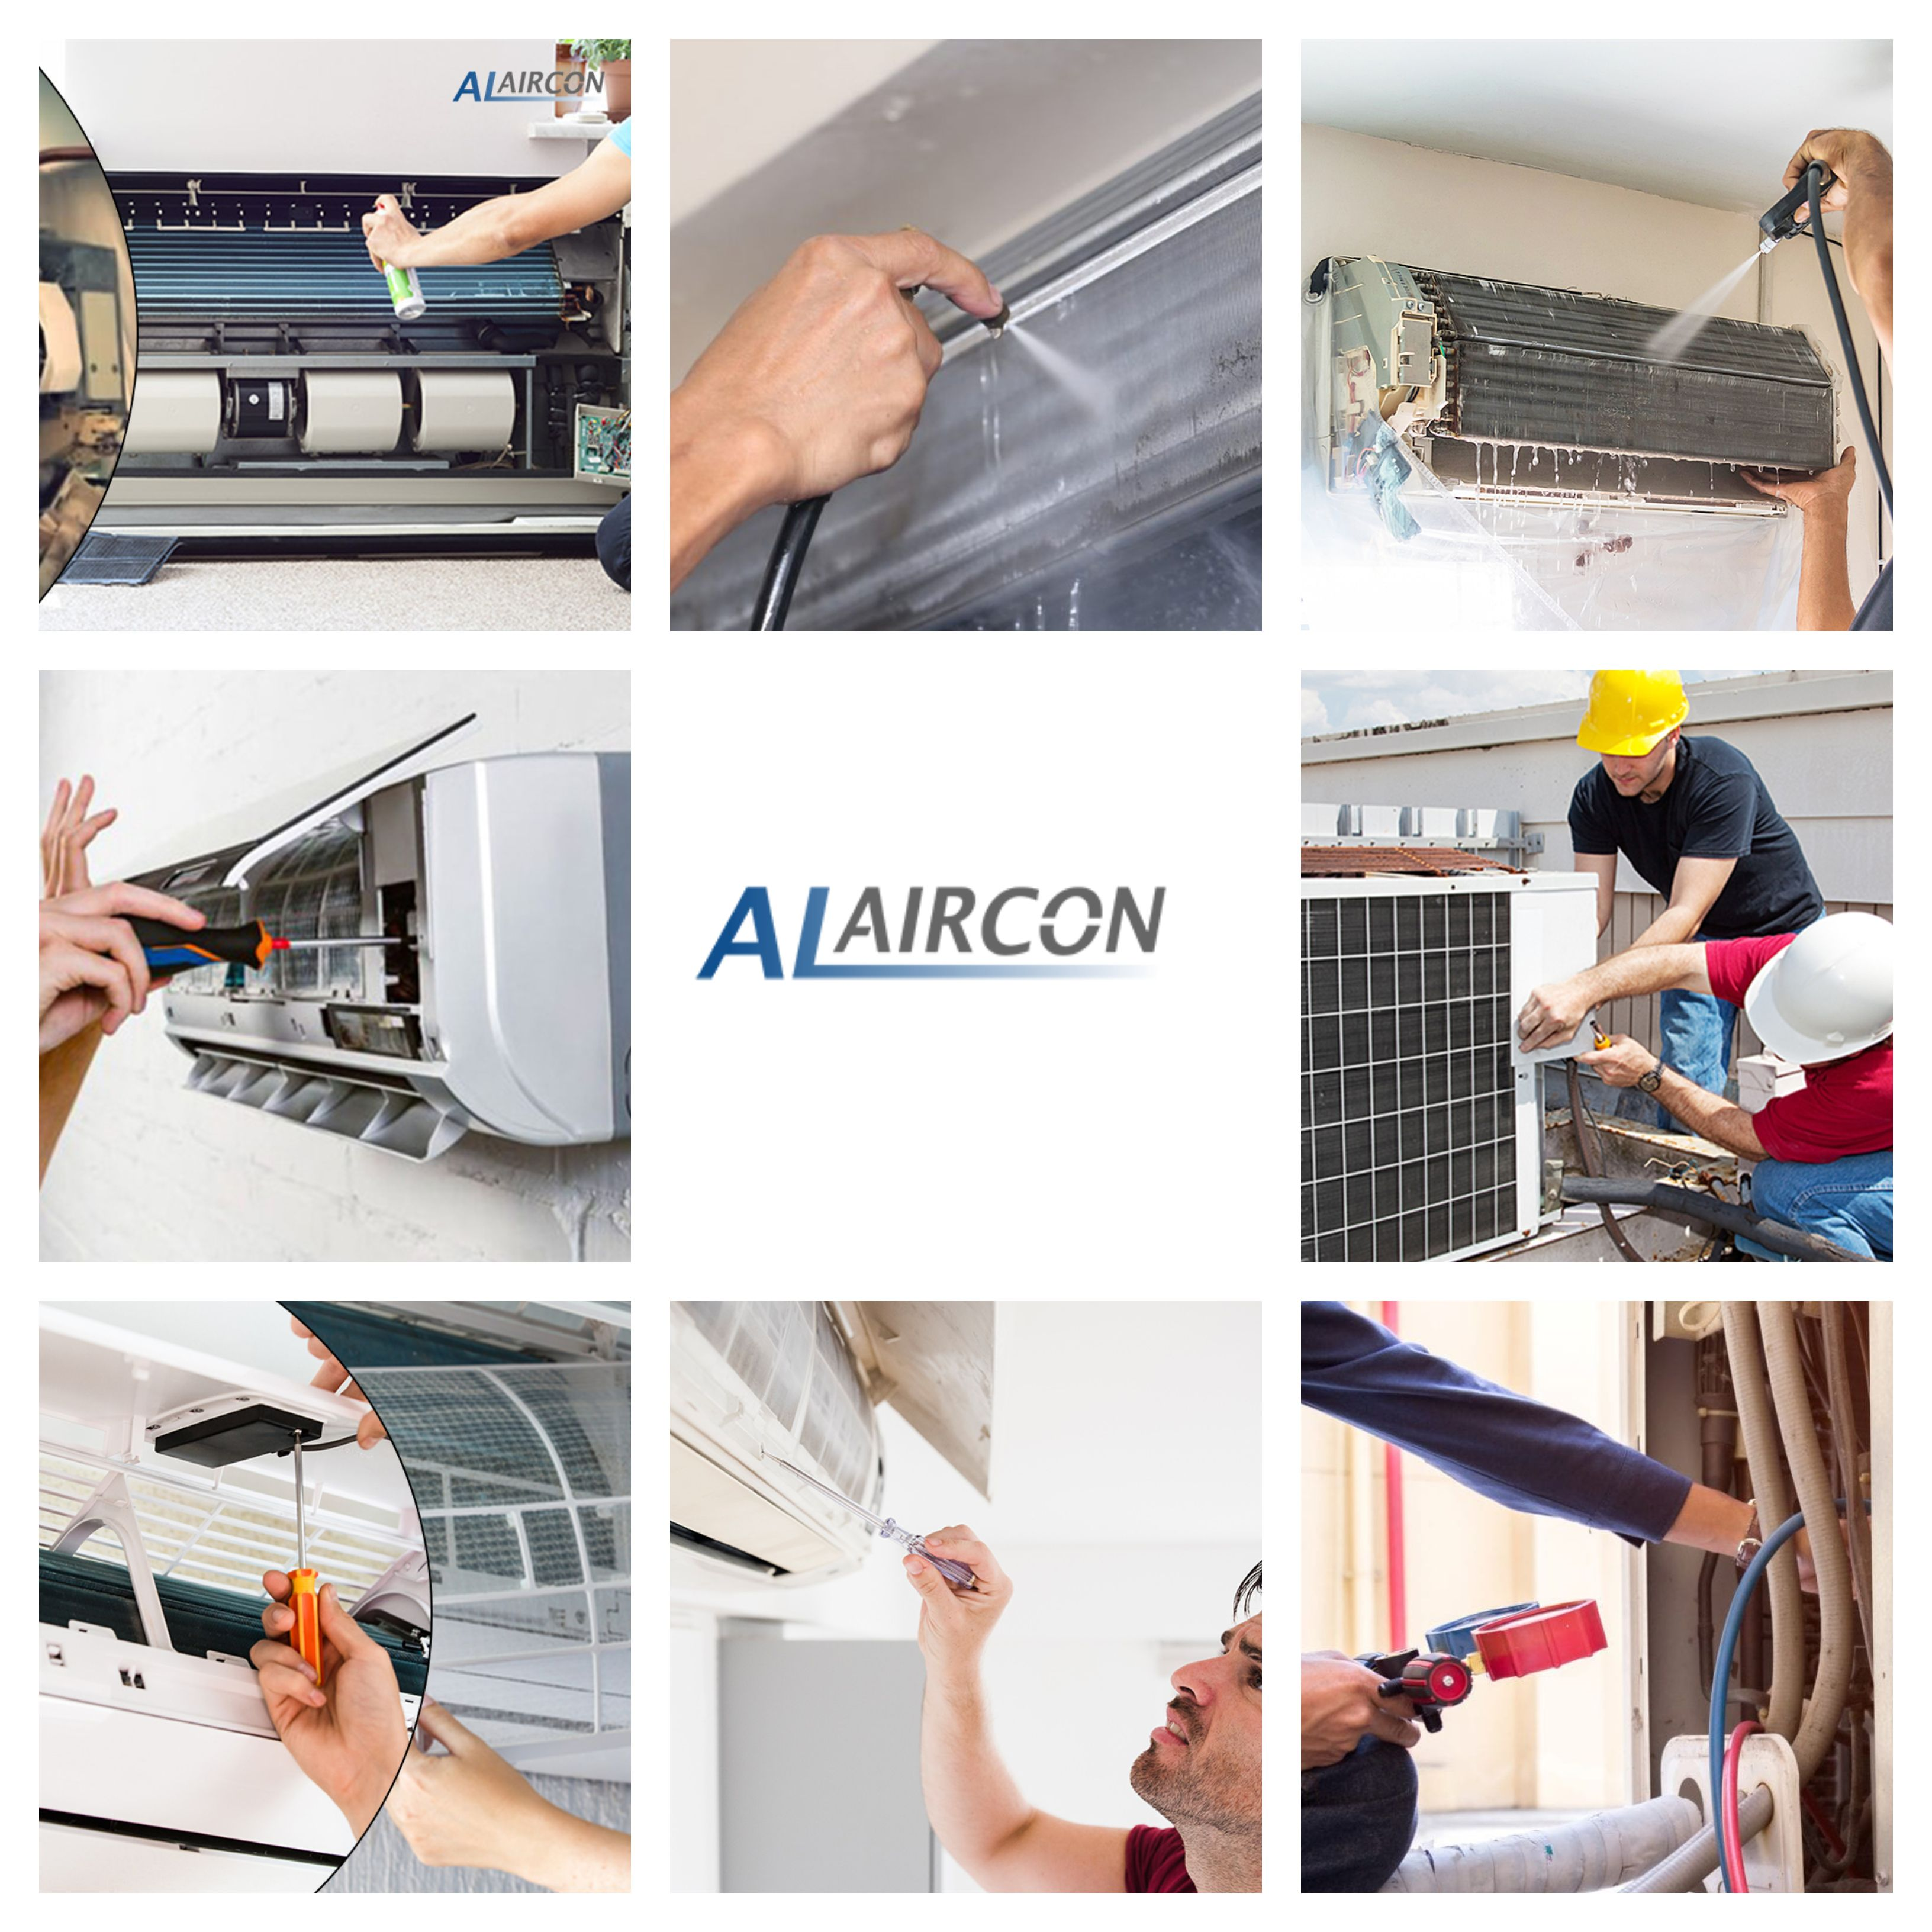 Aircon Cleaning Service Singapore in 2020 Air